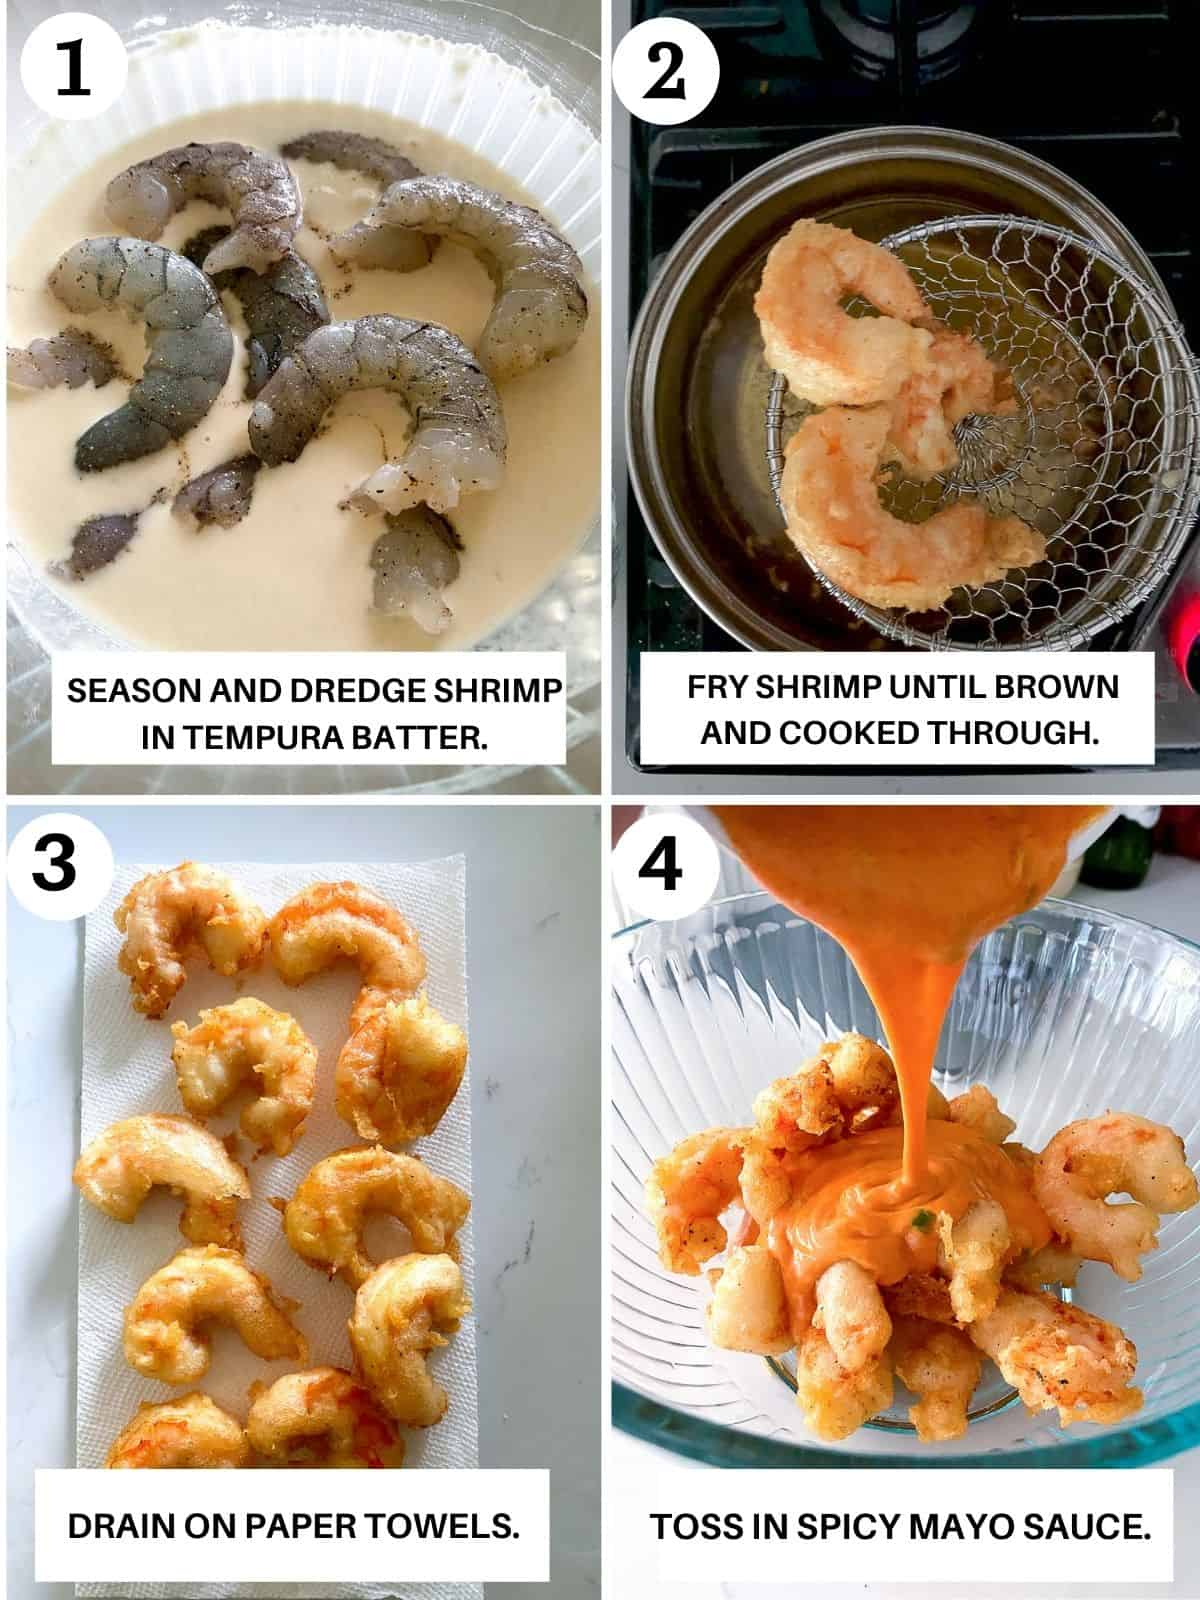 Step by step photos showing how to dredge, season and coat dynamite shrimp.